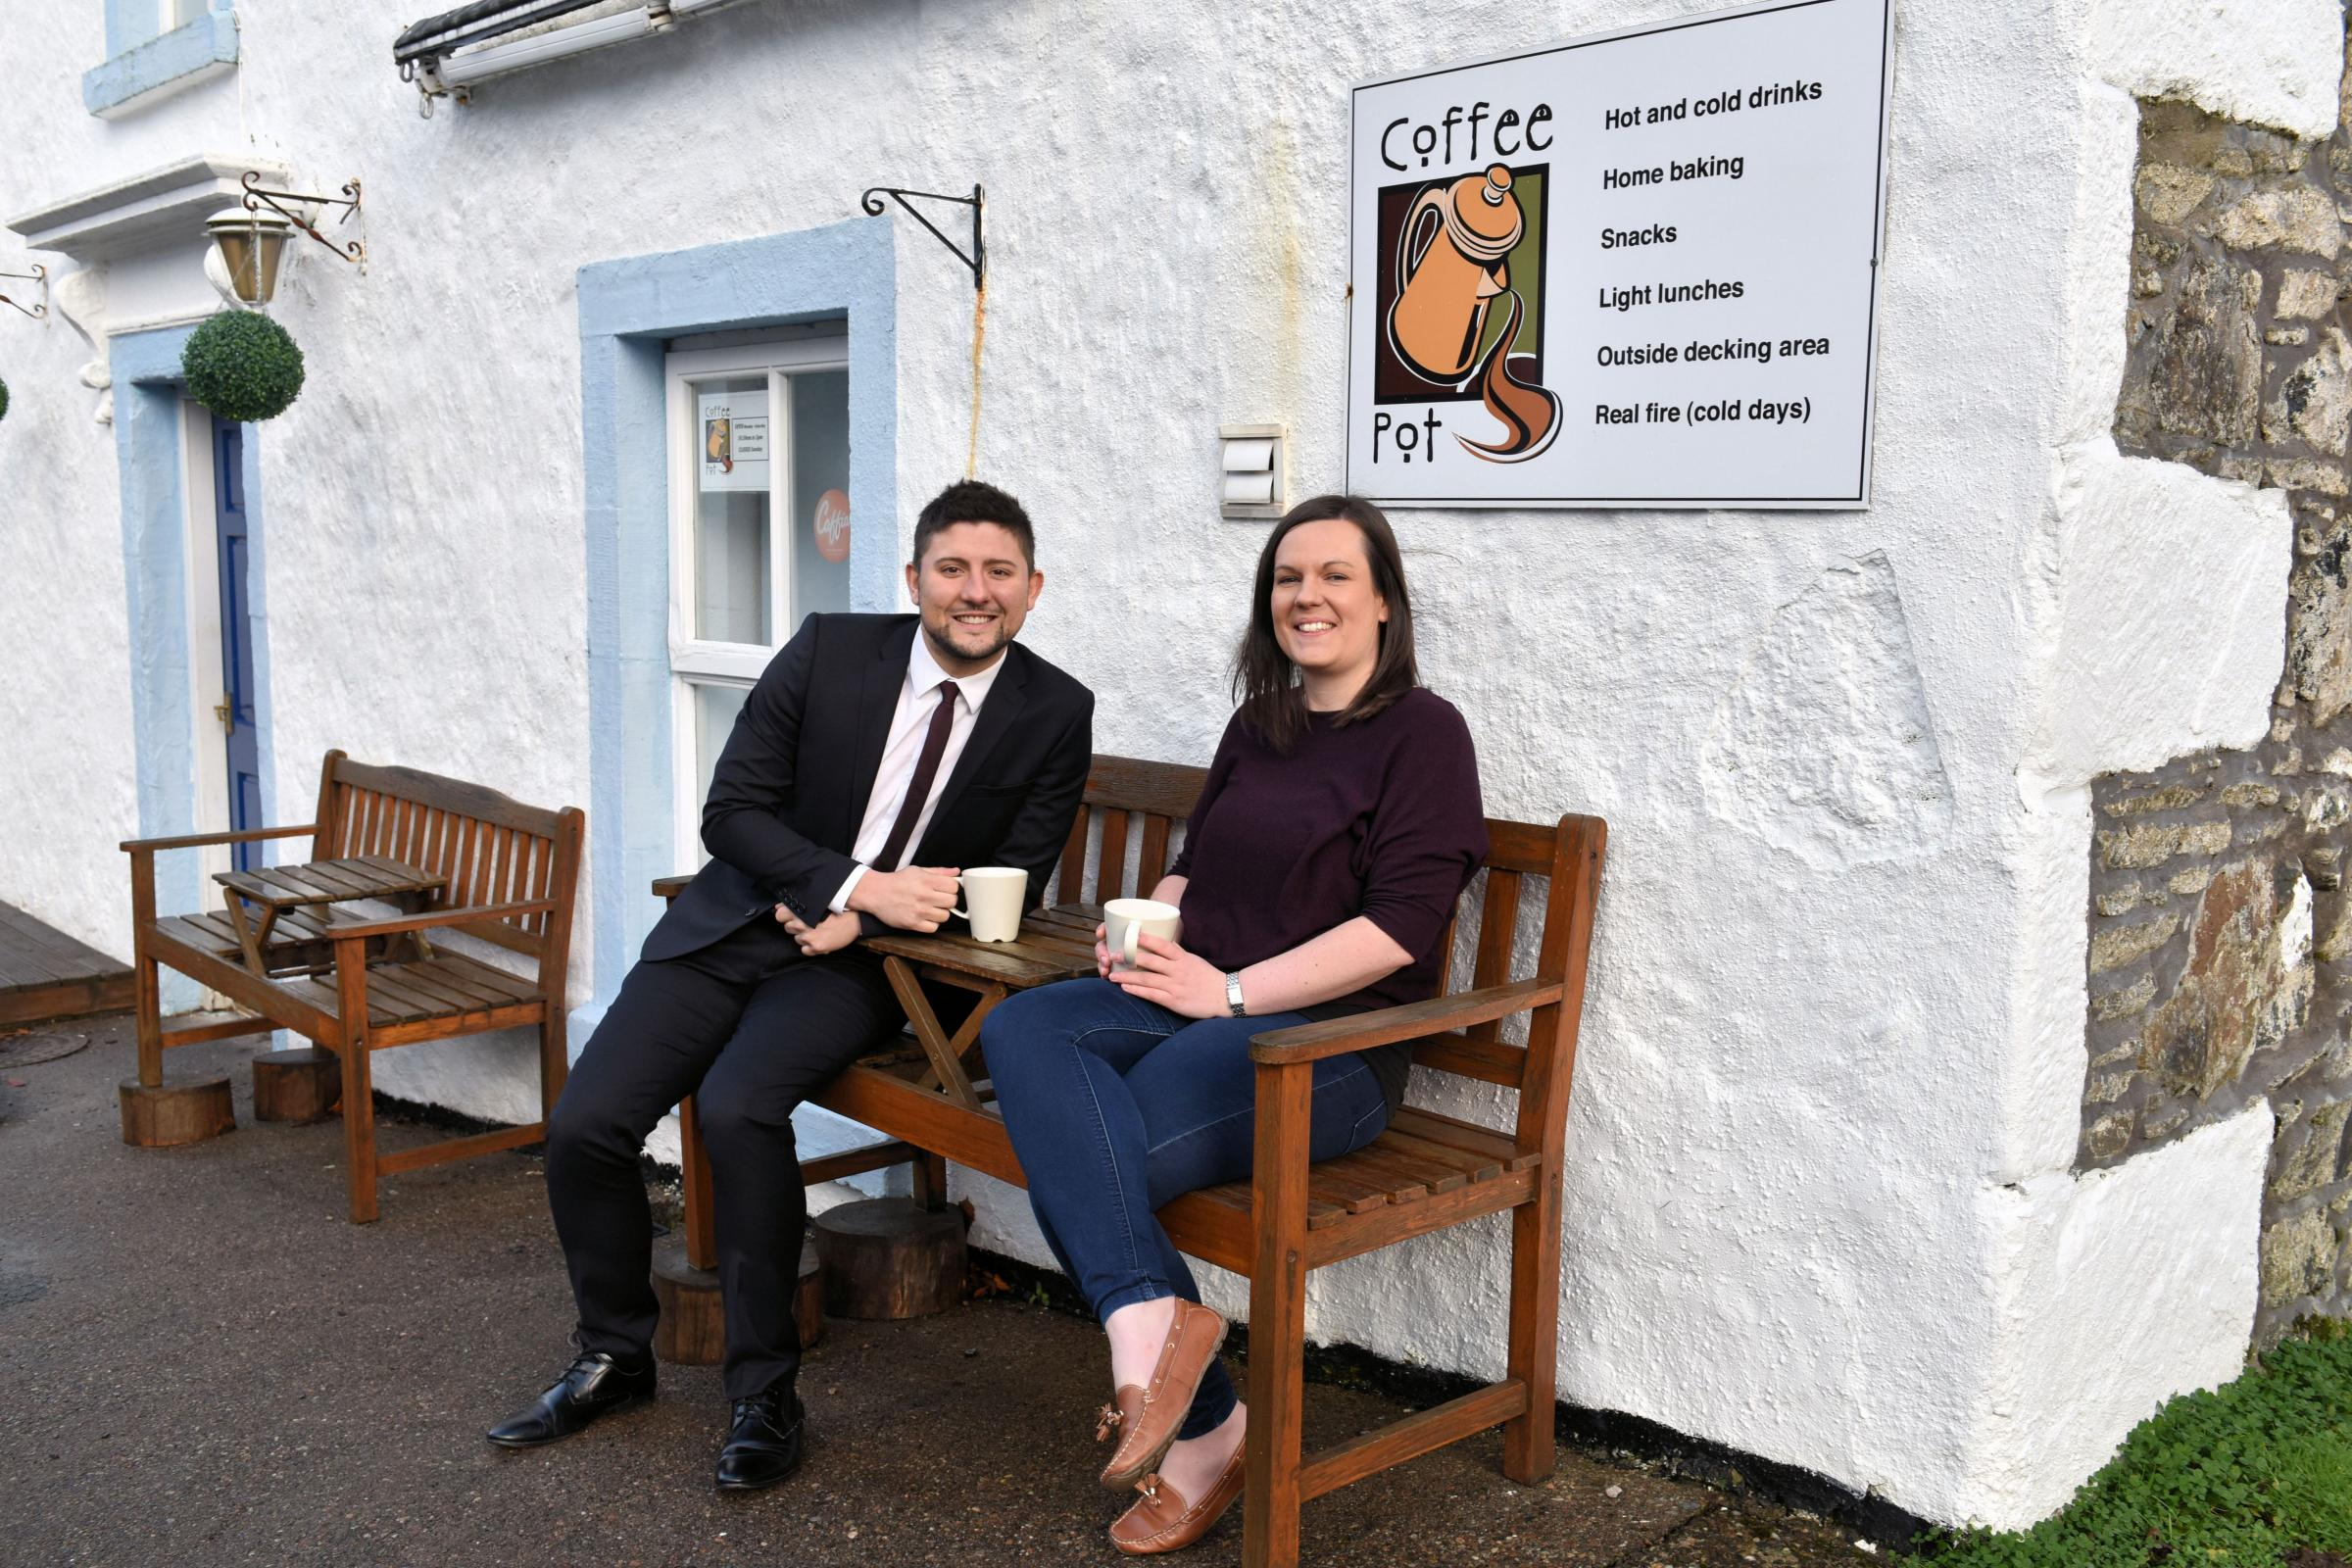 Former banker buys cafe and apartments on Isle of Mull